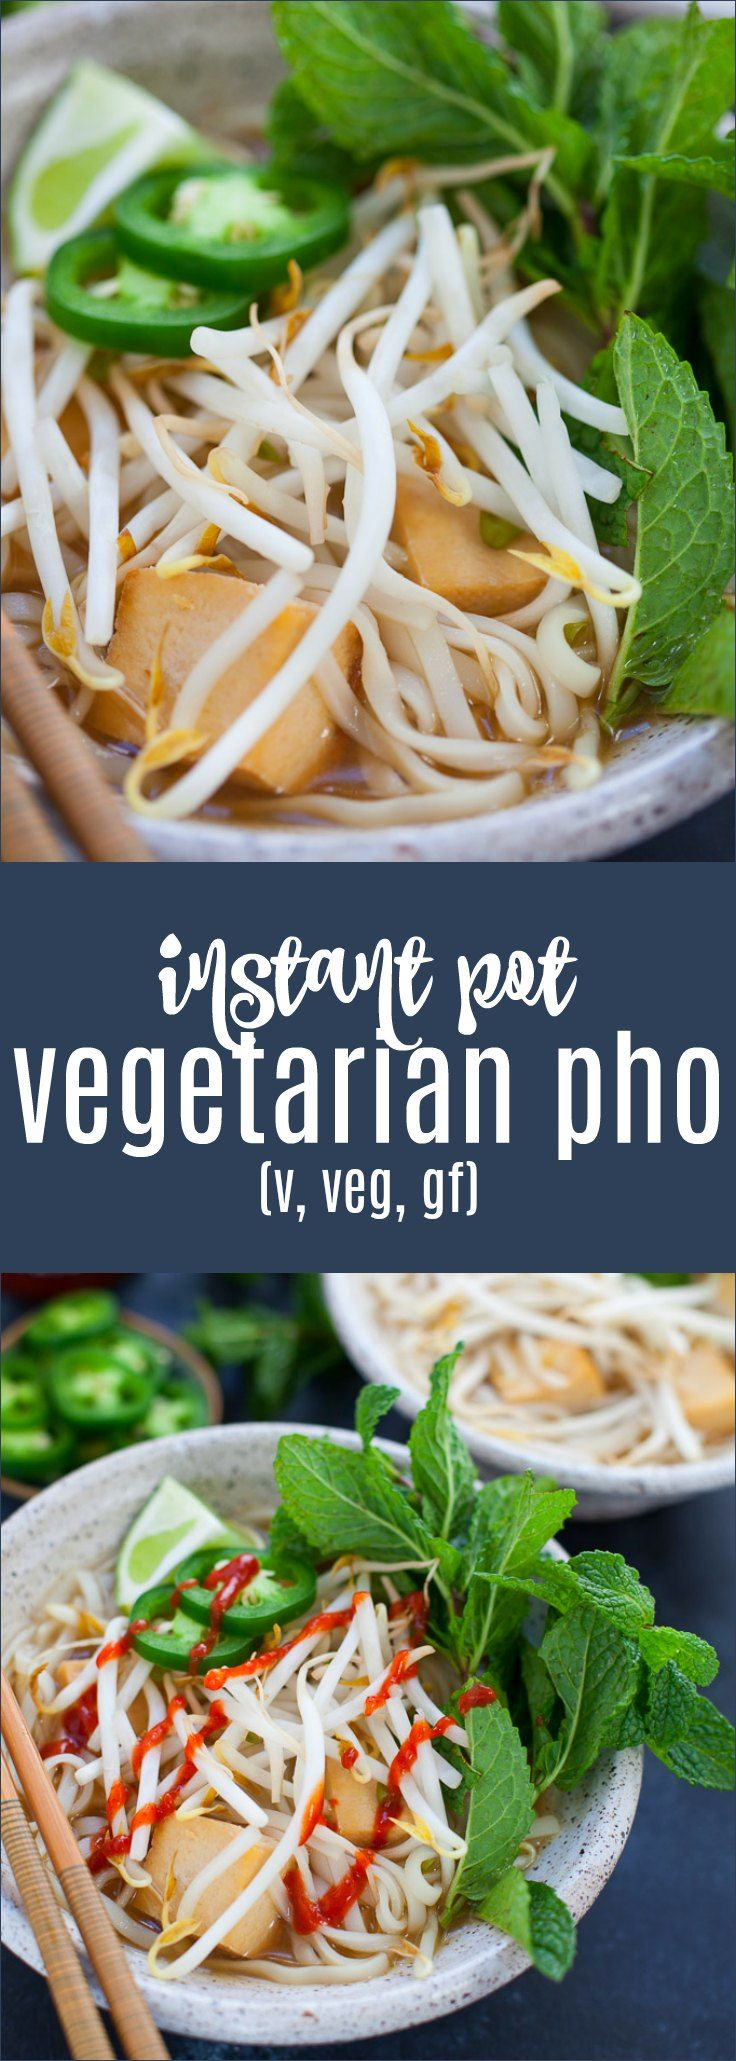 Traditional Vietnamese pho takes an entire day to make; this version only takes under an hour! Instant Pot Vegetarian Pho is perfect for a quick refreshing and comforting weeknight meal. #instantpot #pho #vegetarian #glutenfree